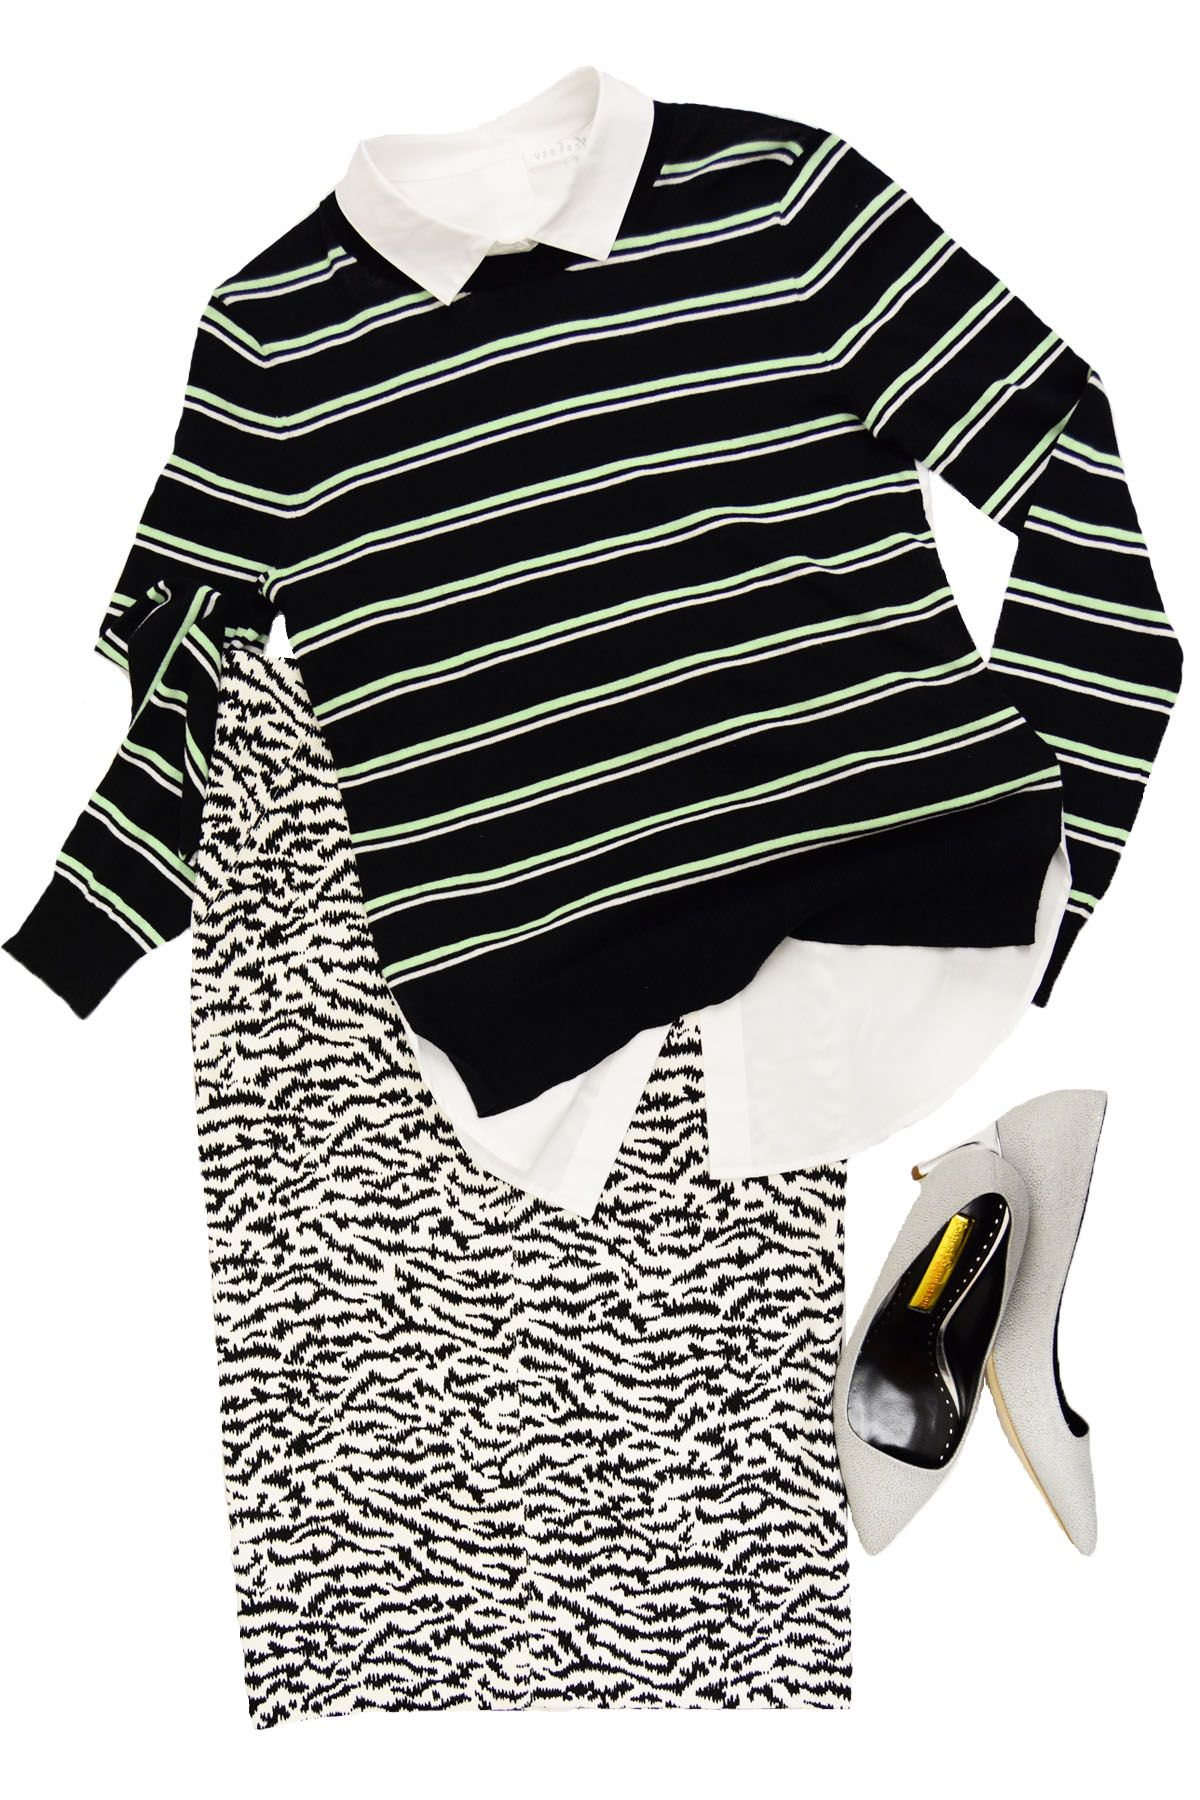 Veronica Beard Mint Striped Combo Sweater, Veronica Beard Tiger Skirt, Rupert Sanderson Lydia Pebble Shoe